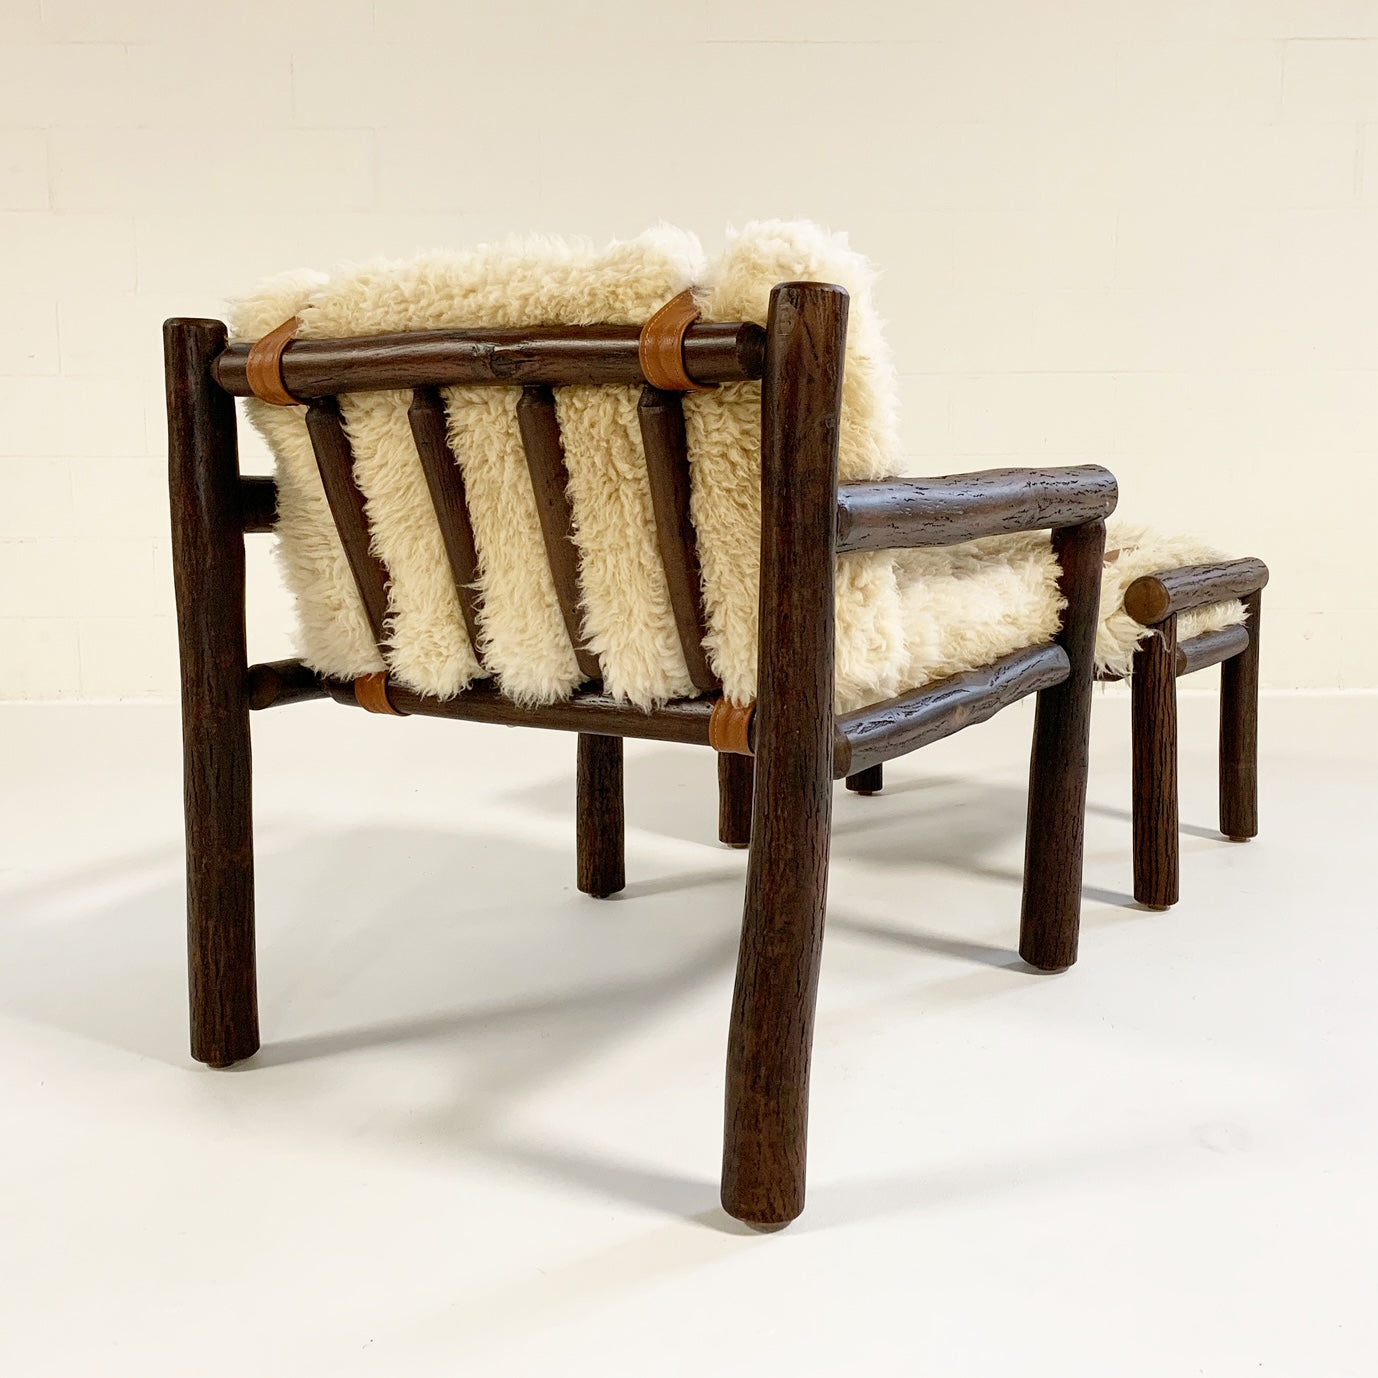 Butte Chair and Ottoman with Sheepskin Cushions - FORSYTH